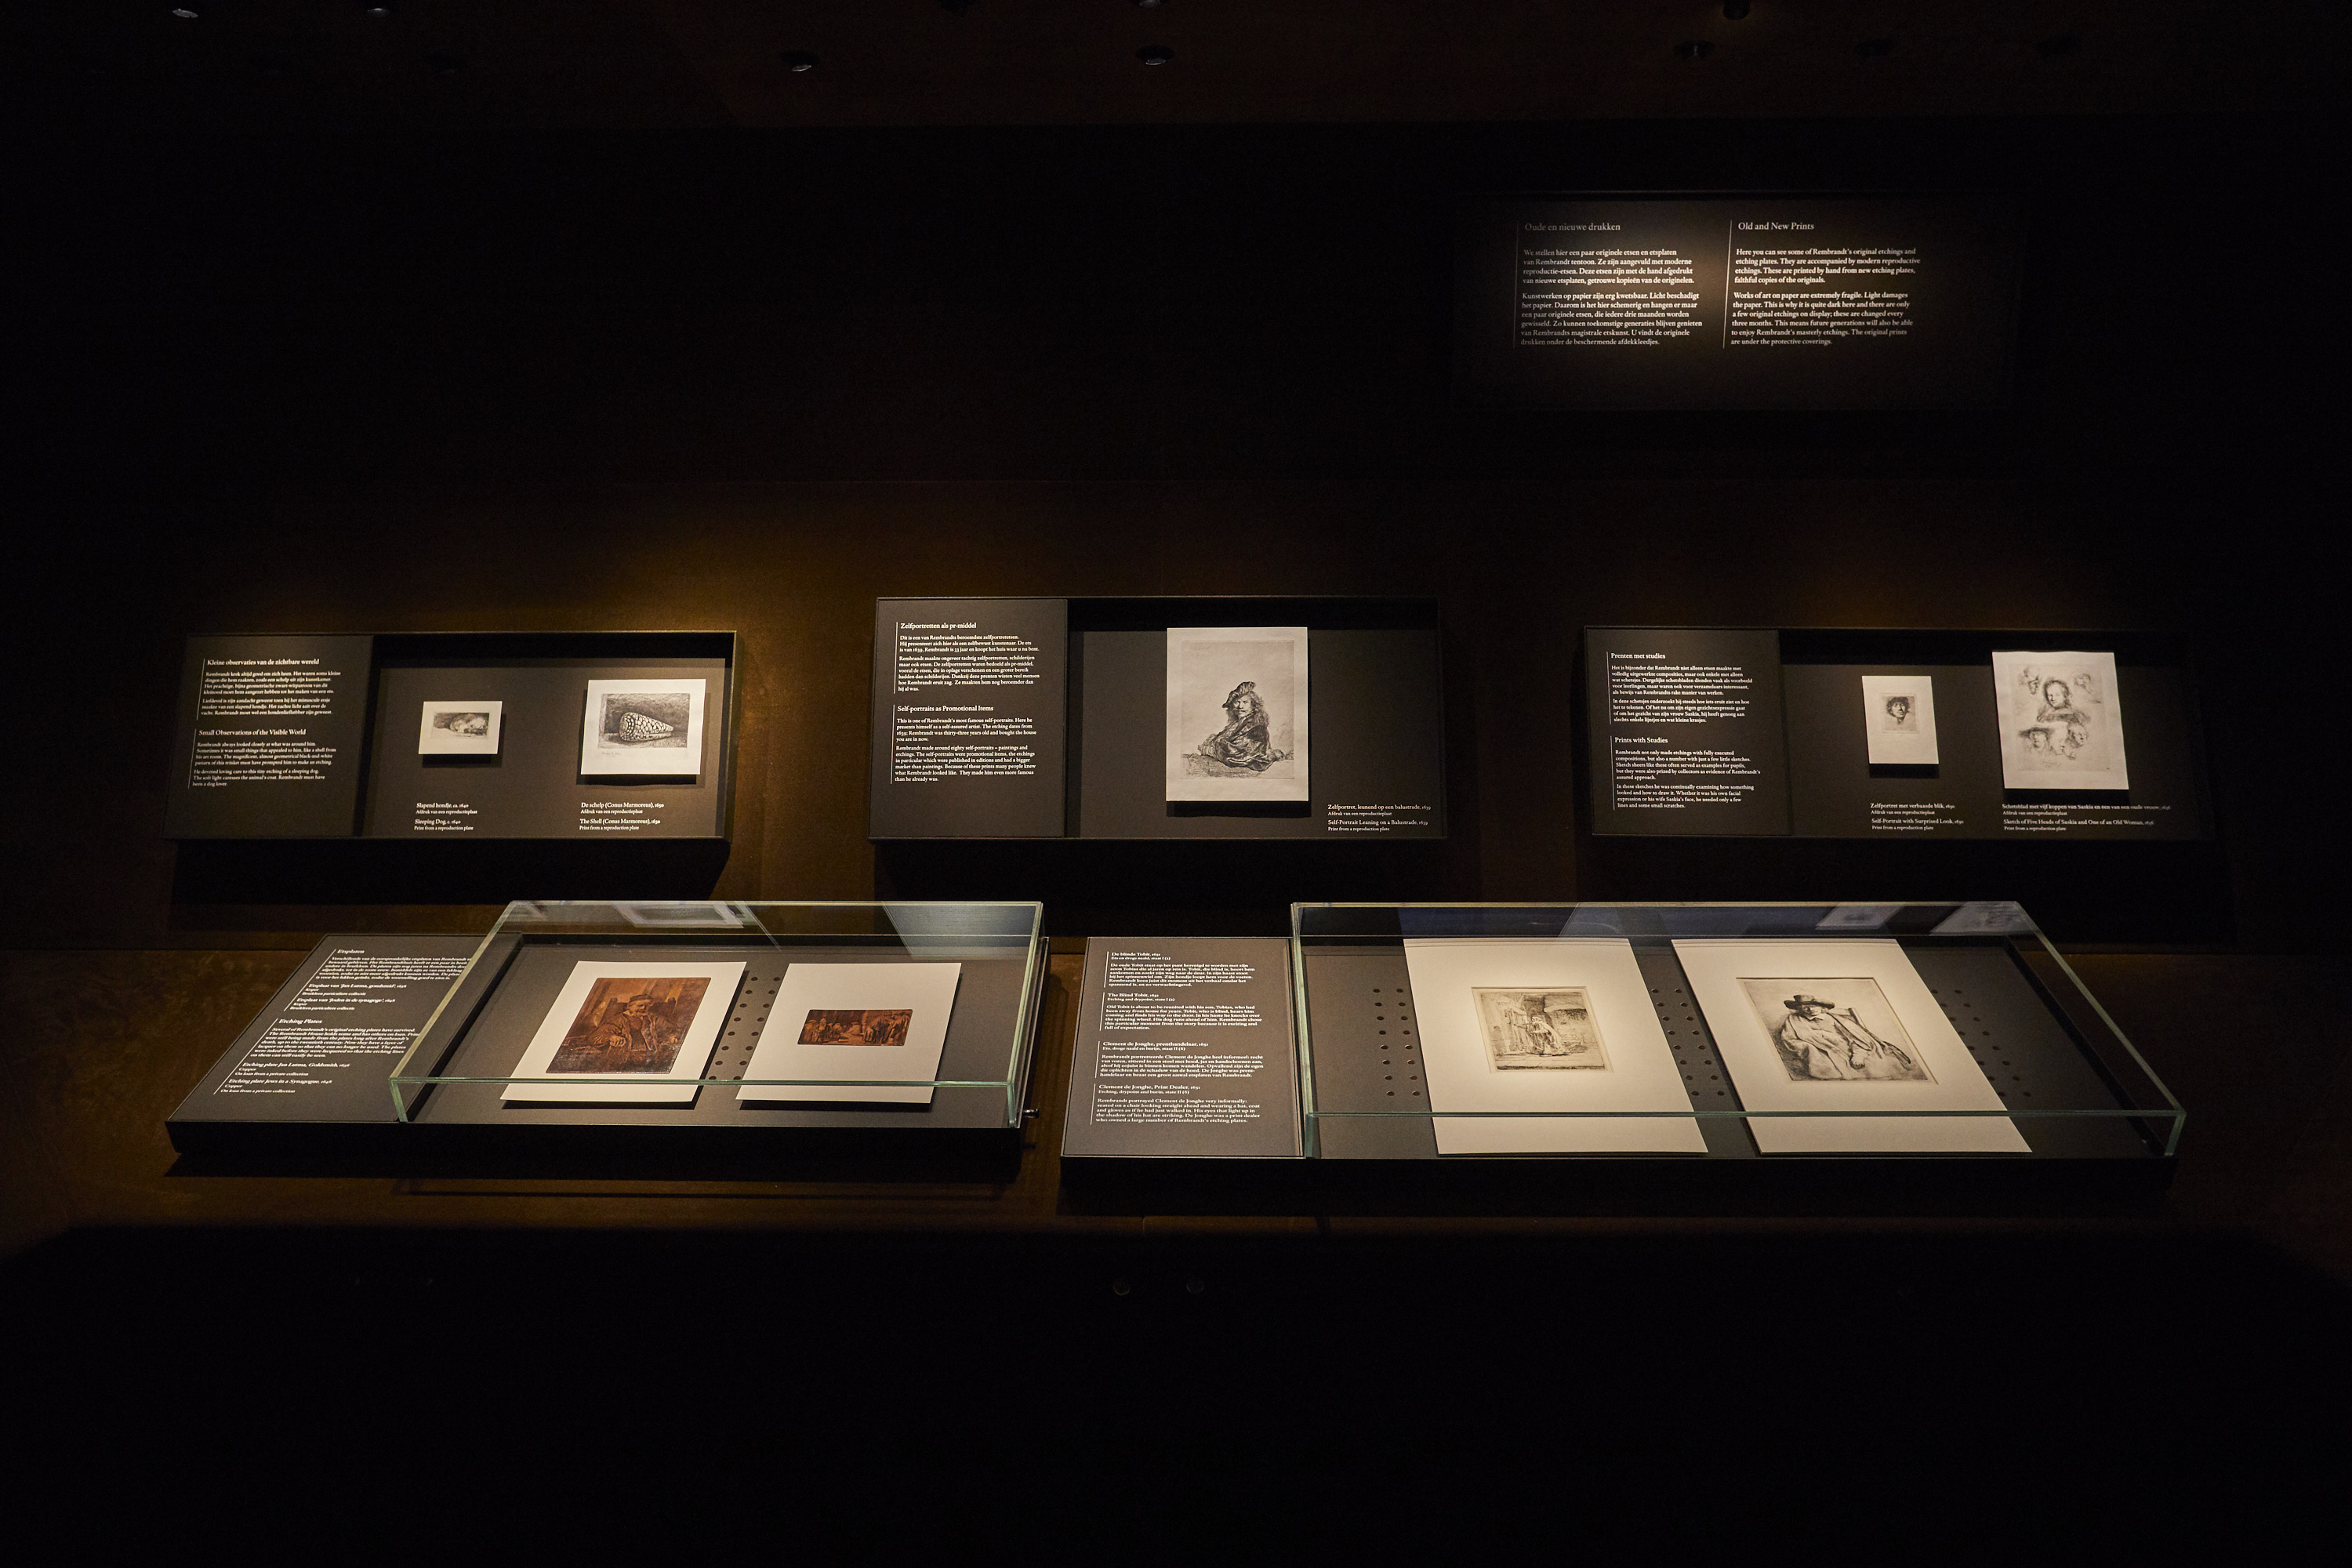 Rembrandt Exhibition Shell : Shell ends corporate partnership with national gallery desmog uk